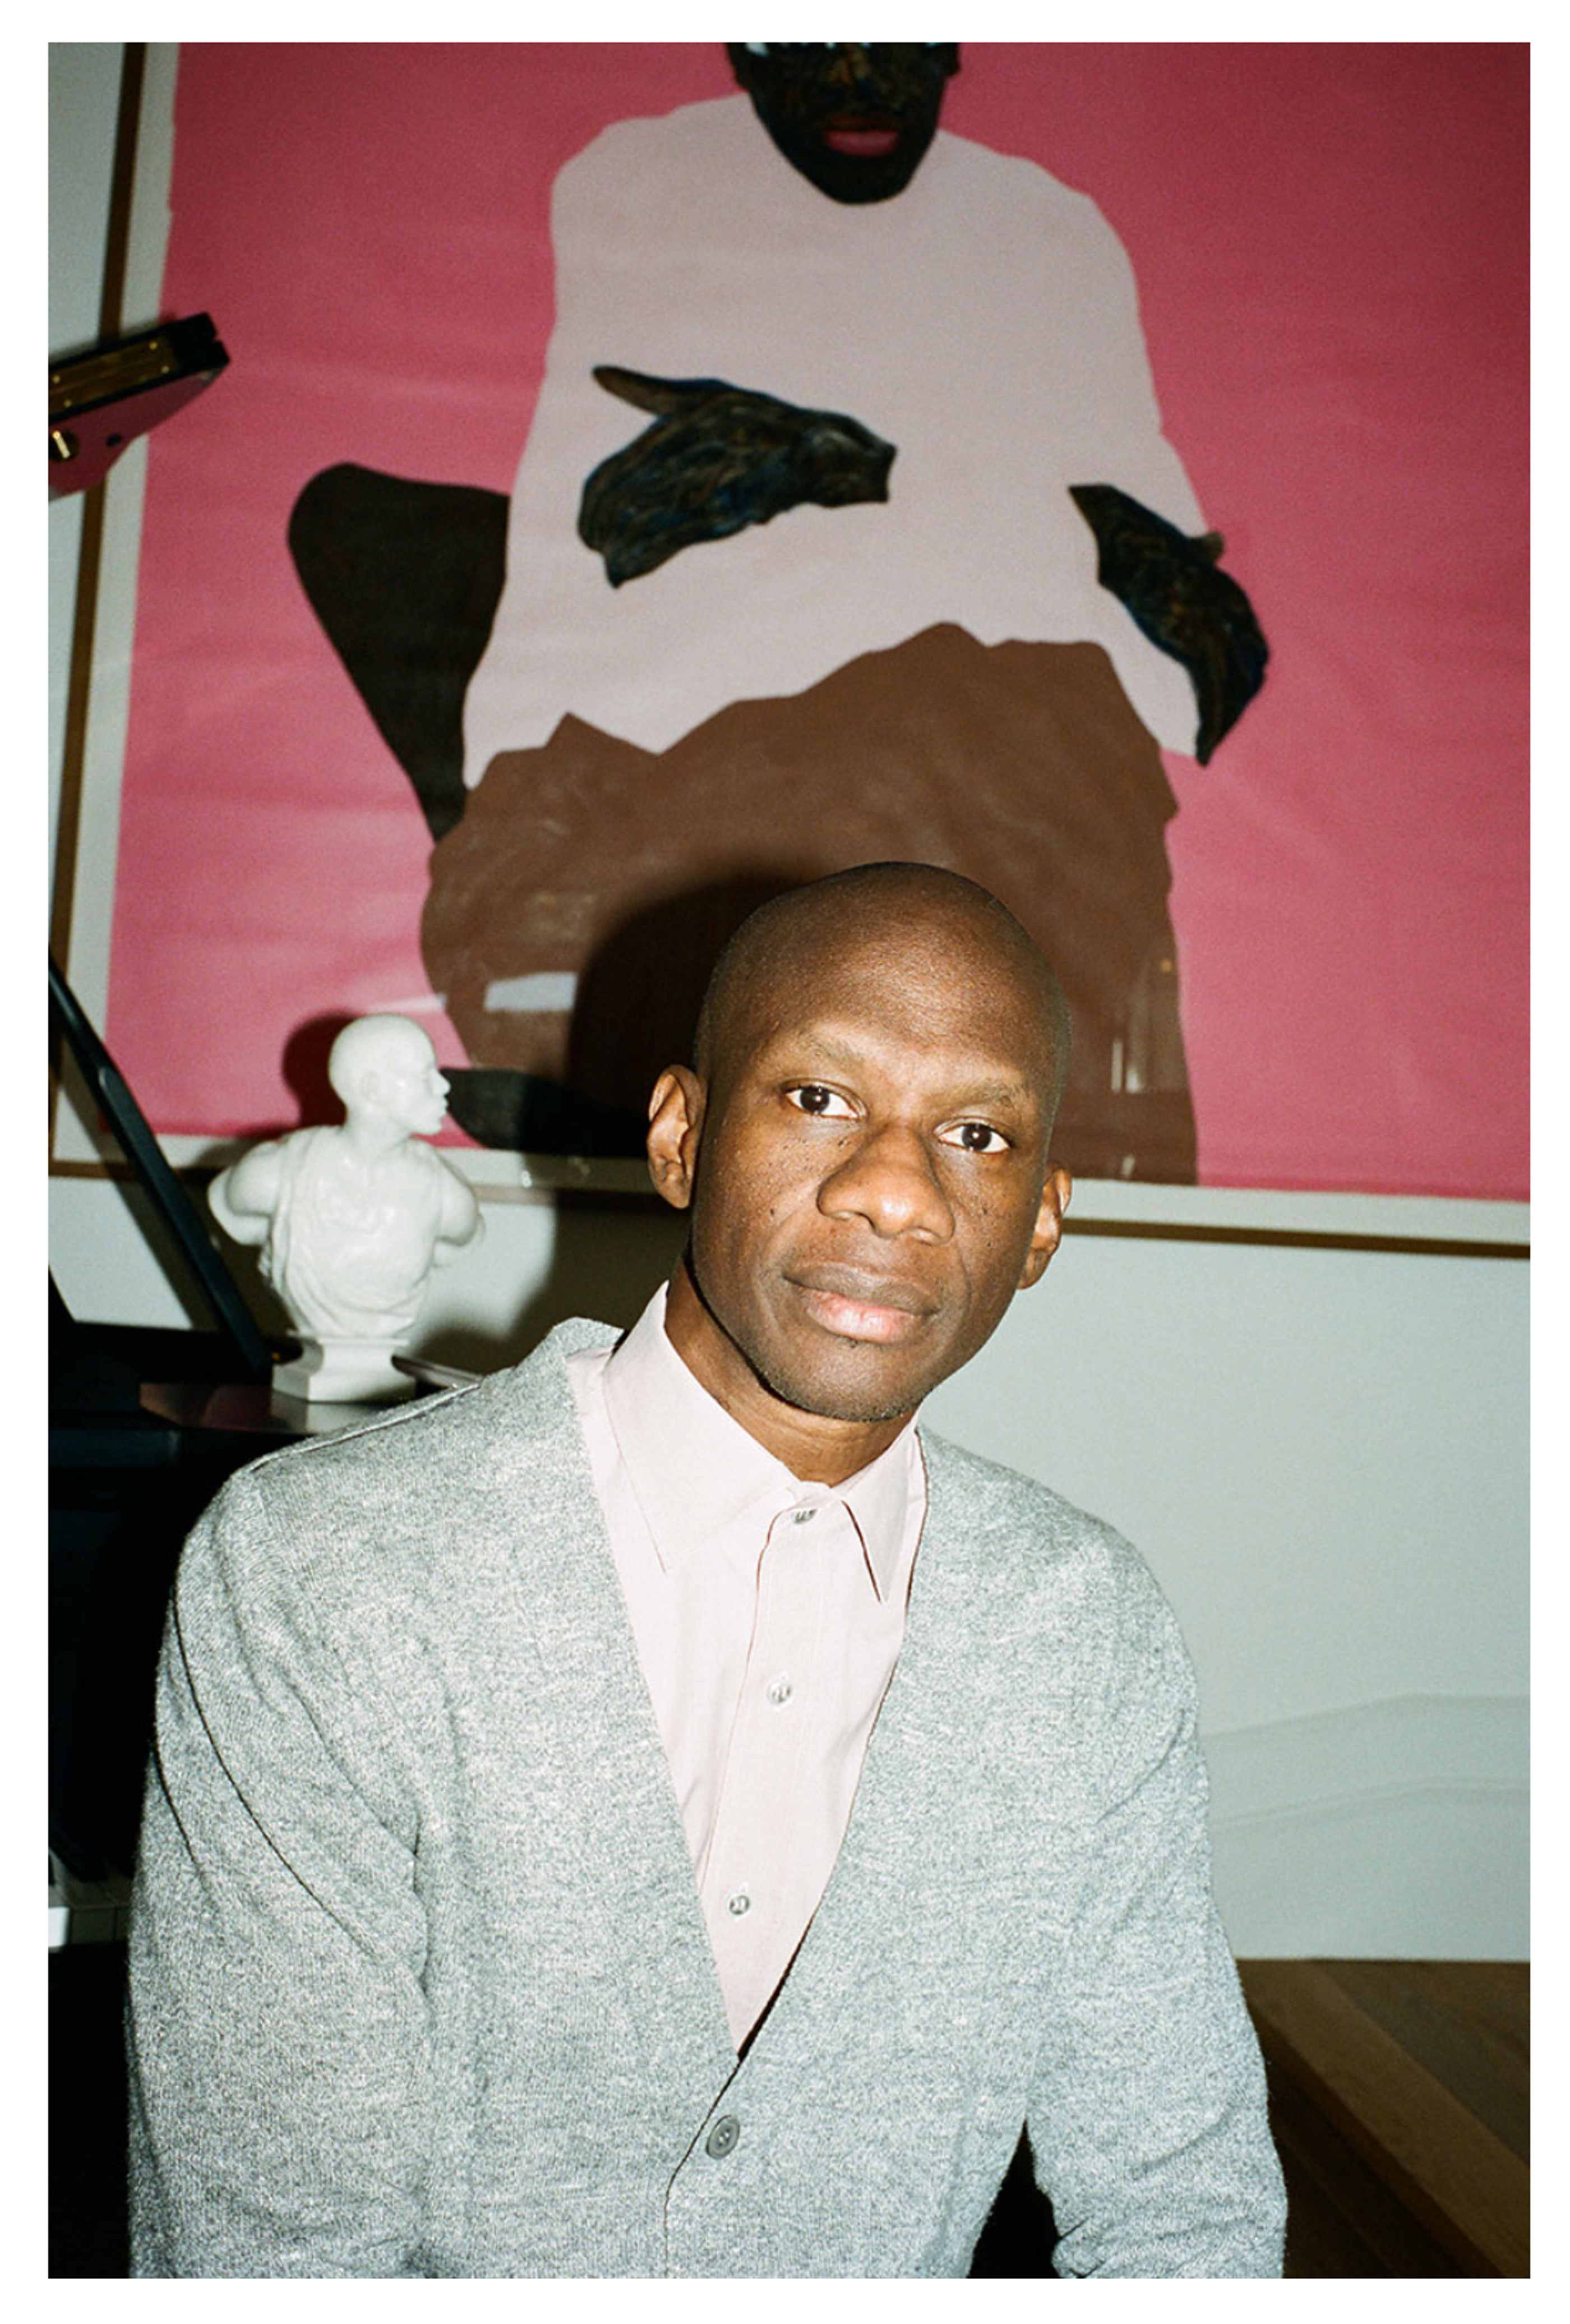 Troy Carter at home with Amoako Boafo, White Hat White Shade, 2019. Courtesy: Troy Carter; photograph: Max Farago.